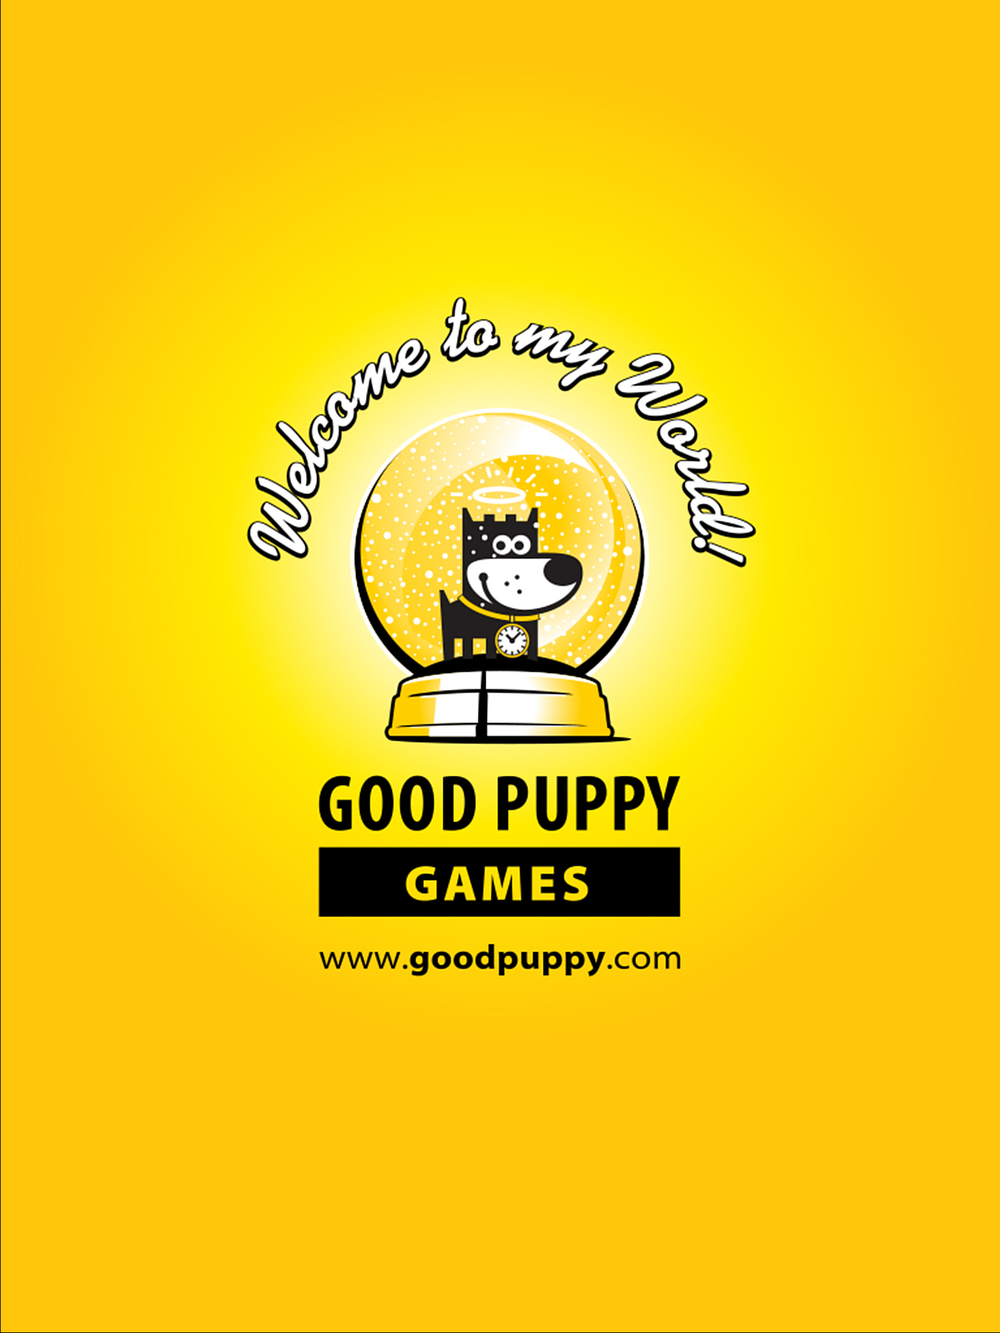 GoodPuppy_TotalRecall_Games_iPad